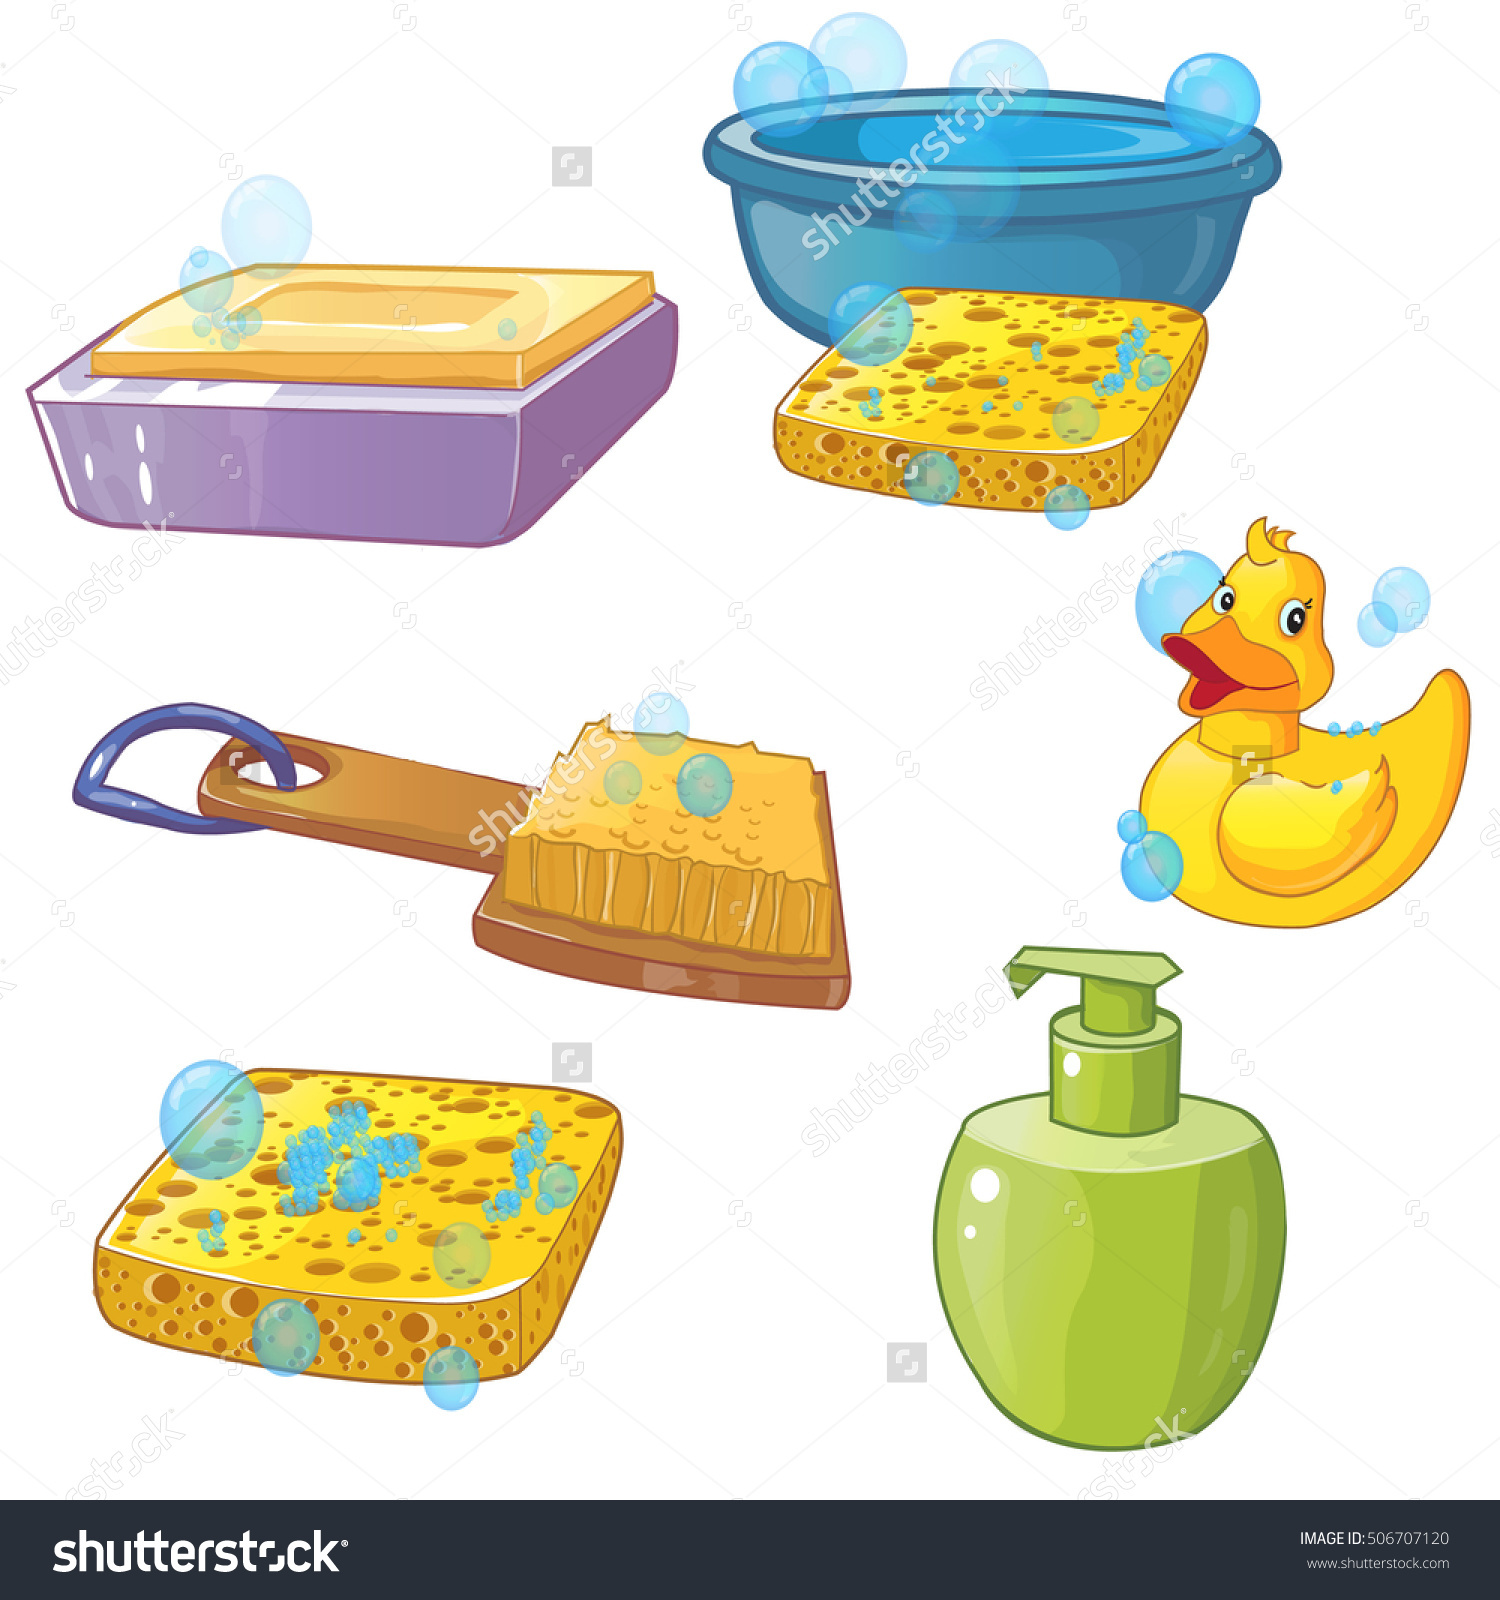 Vector Set Washing Soap Washcloth Sponge Stock Vector 506707120.